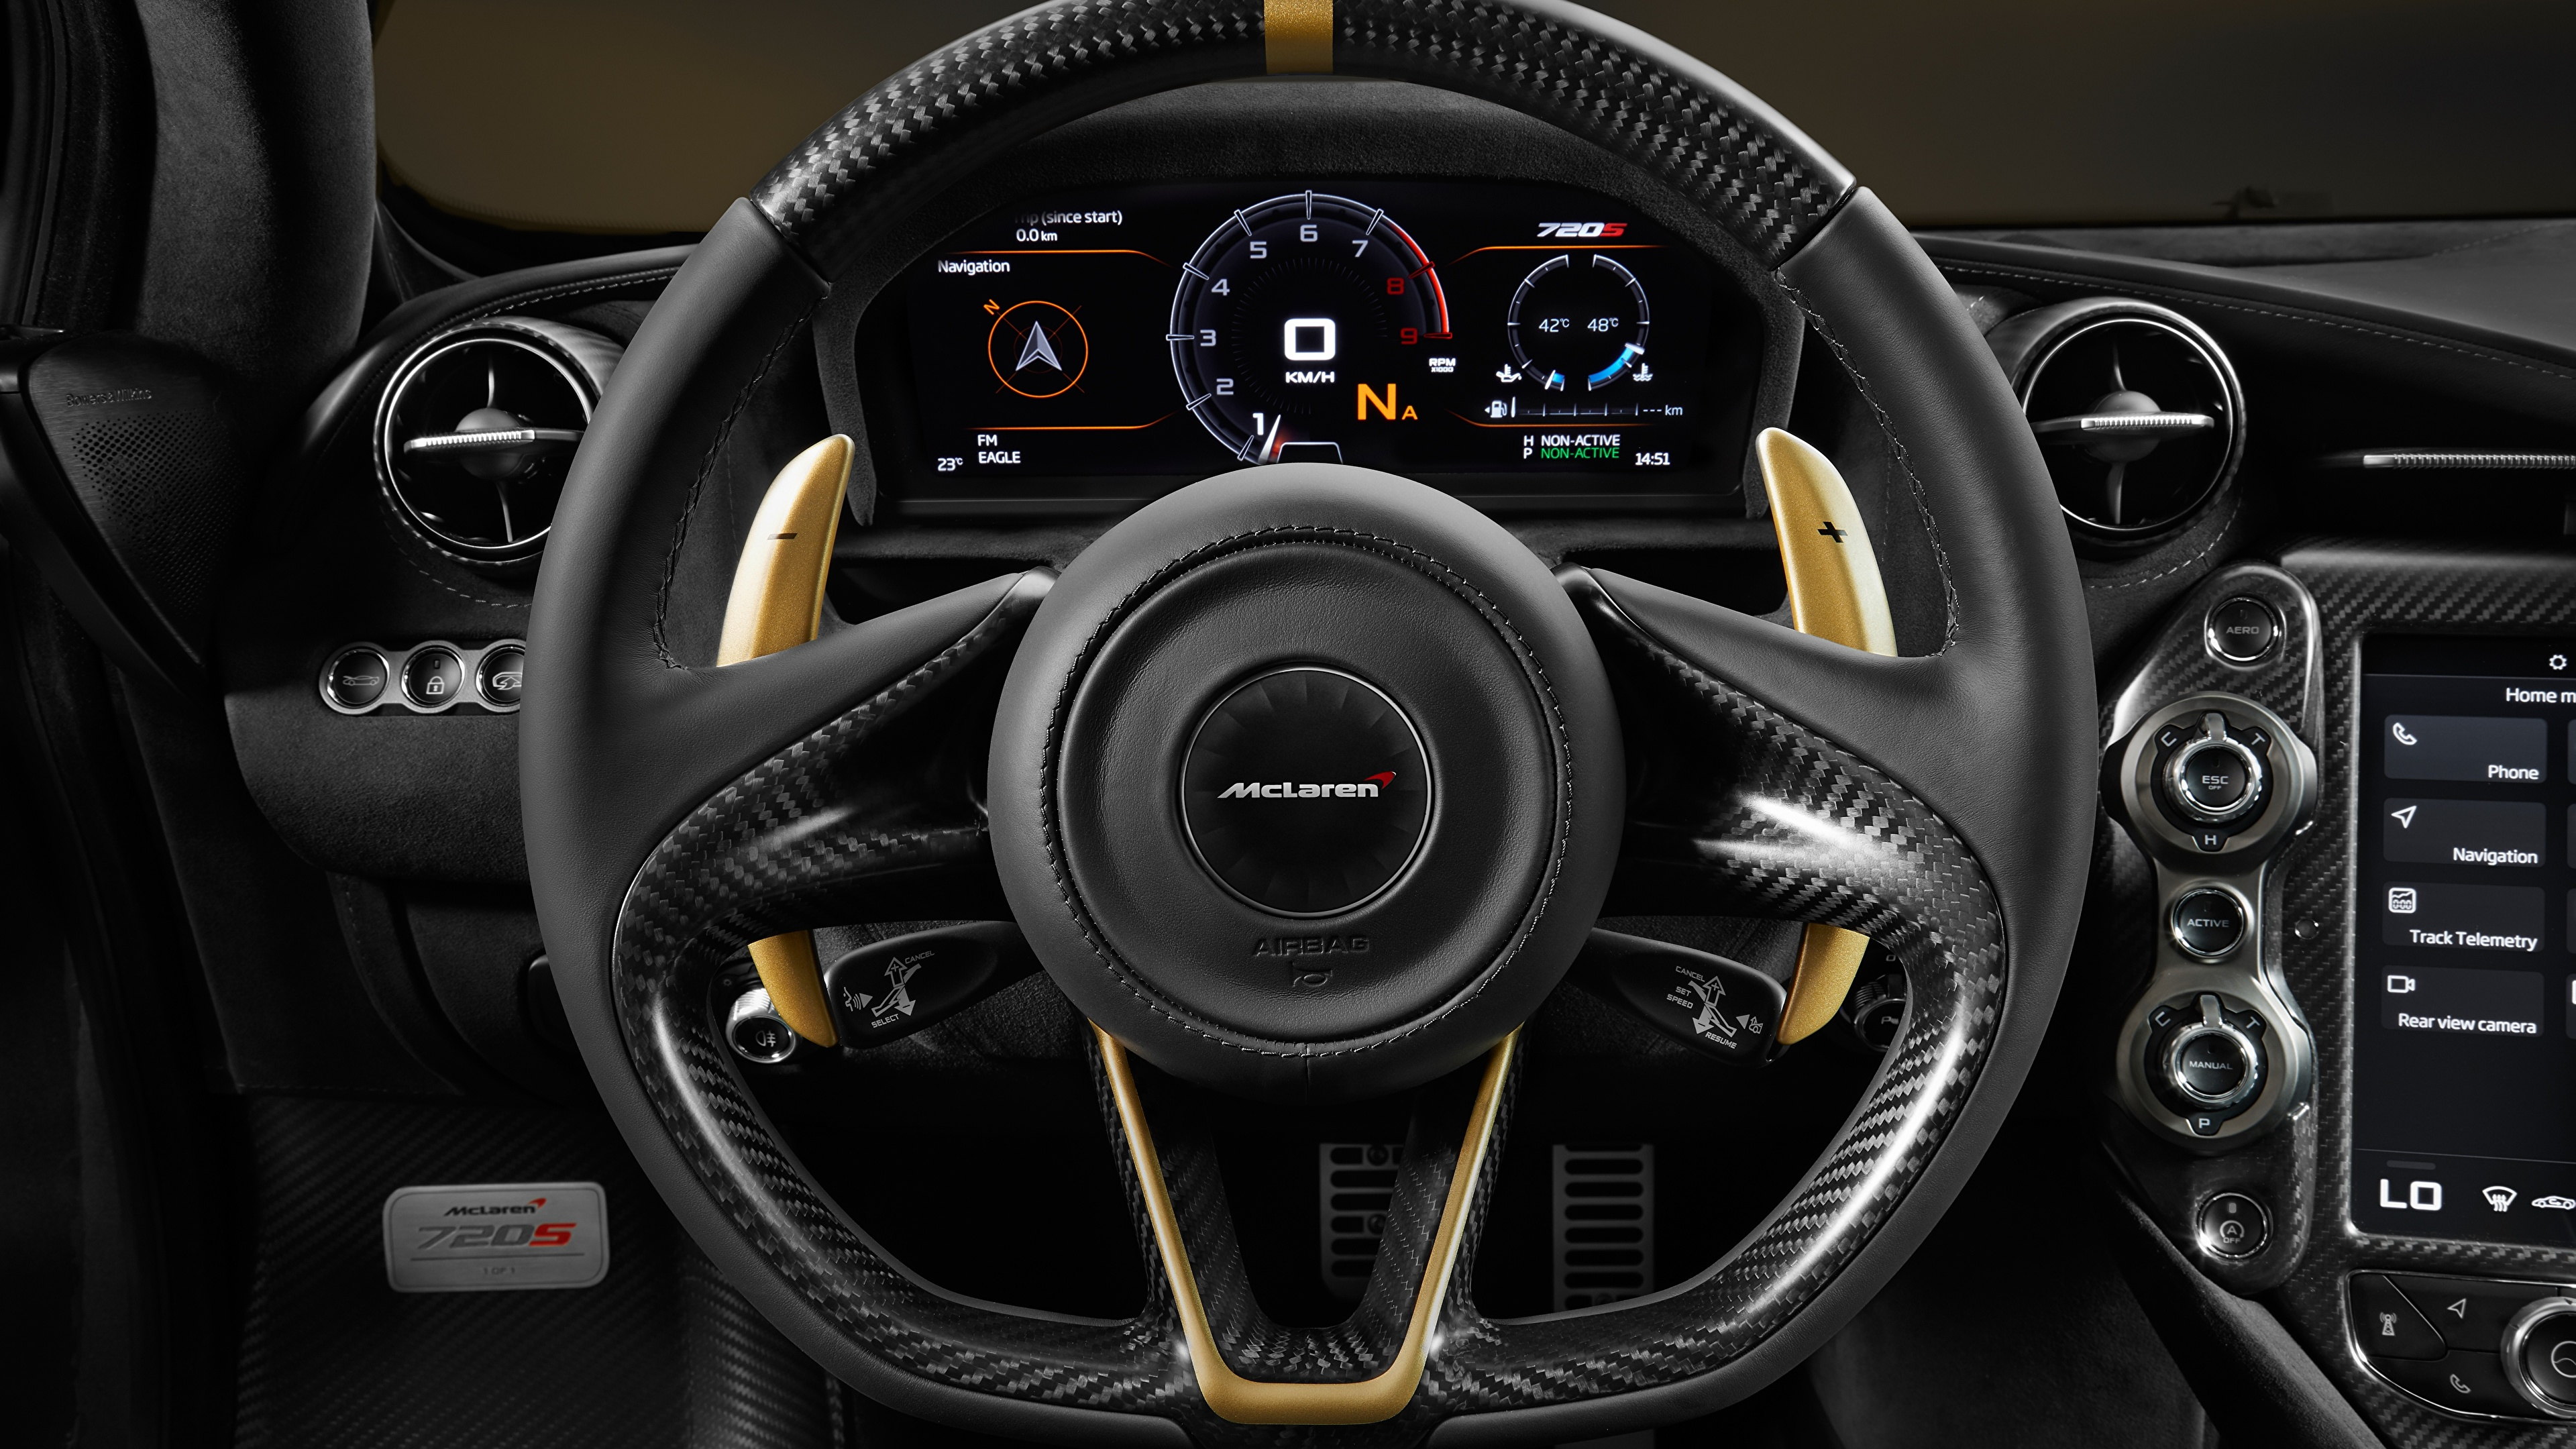 Images Mclaren Steering Wheel Limited Edition Grey Gold 3840x2160